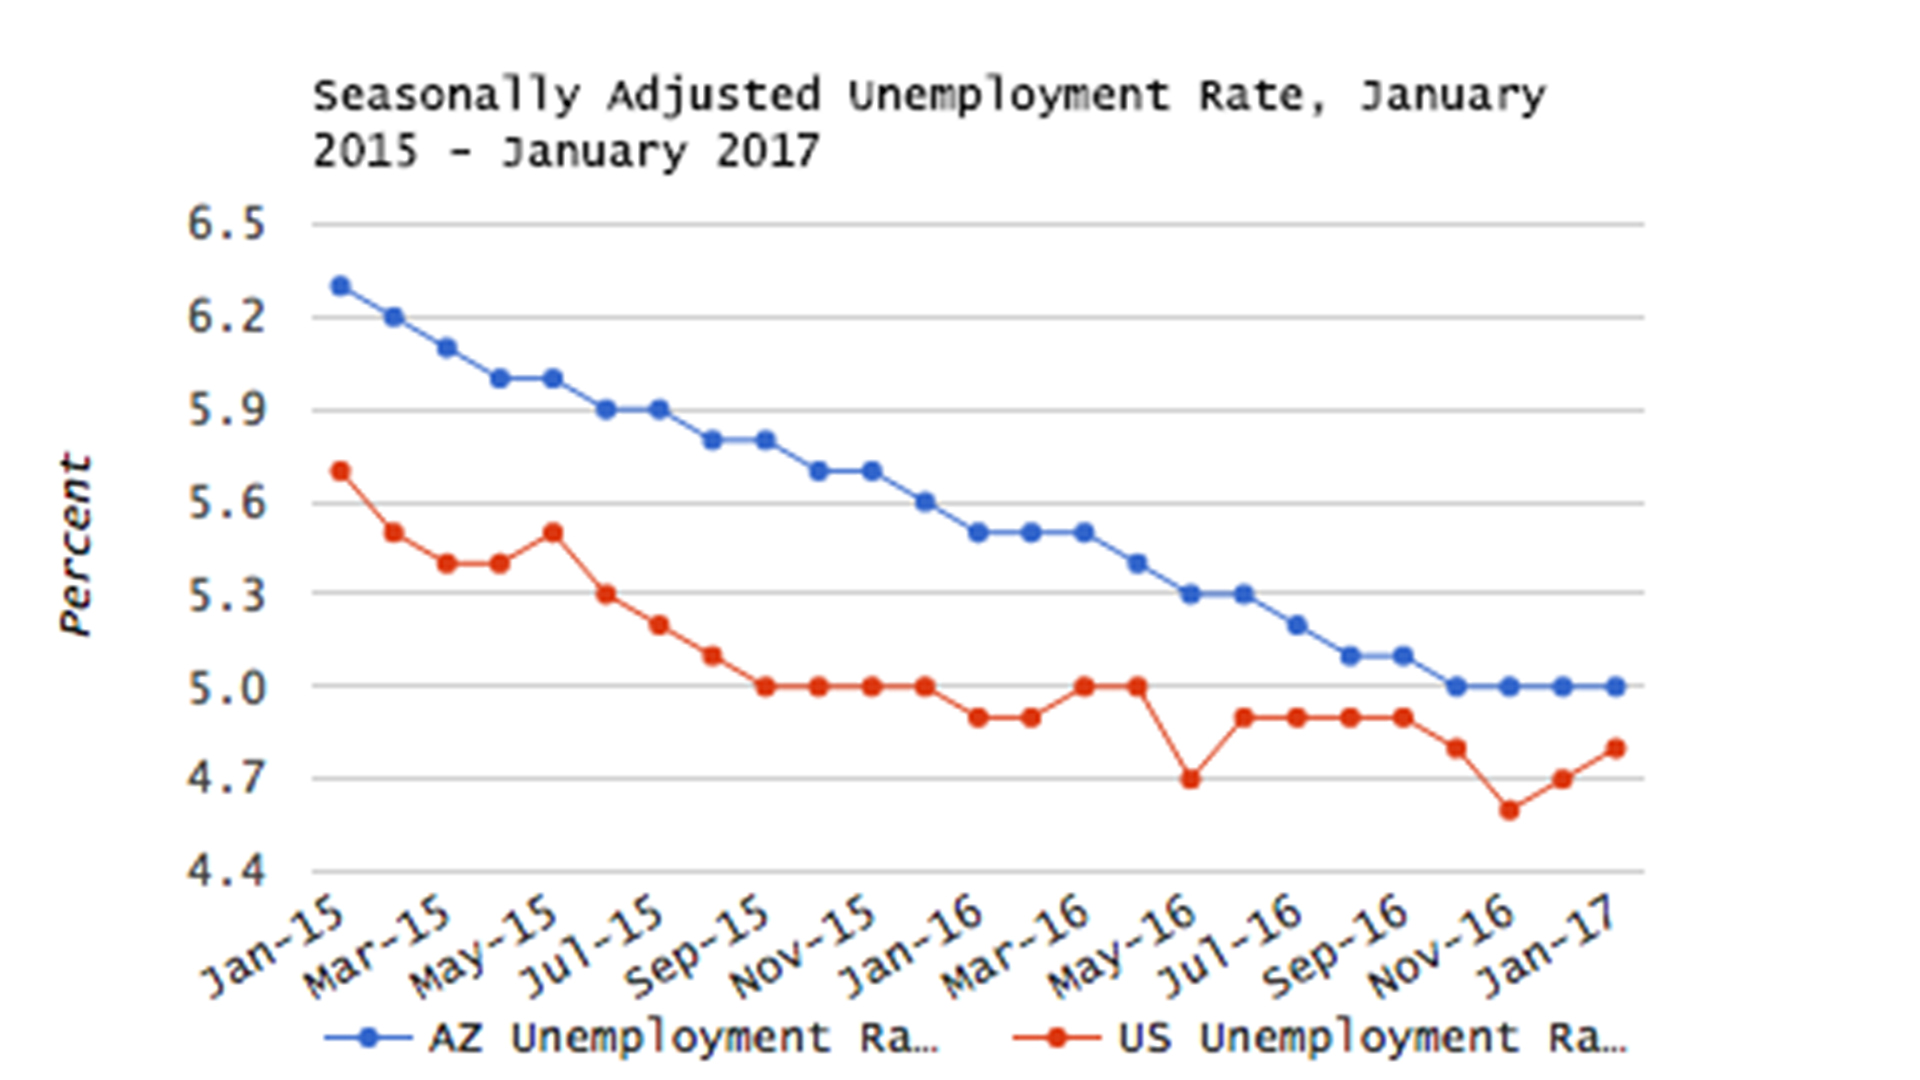 A graph of Arizona and US unemployment rates over the past two years.